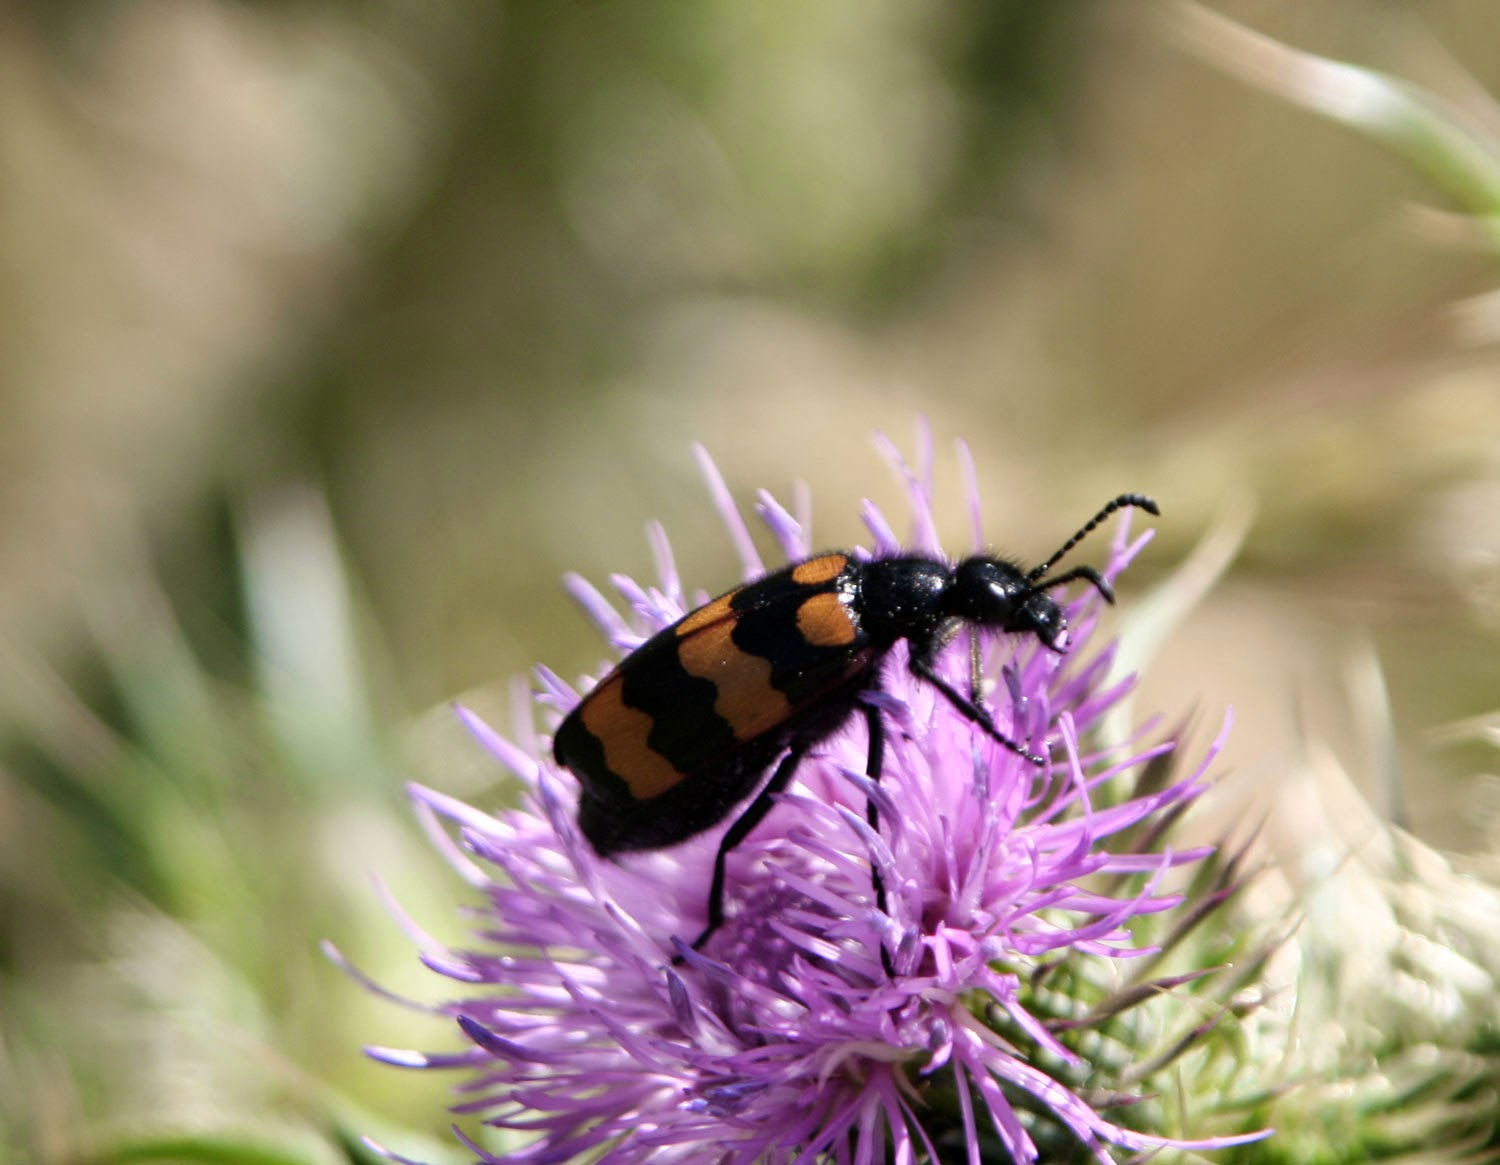 Colourful bug on a colourful thistle head